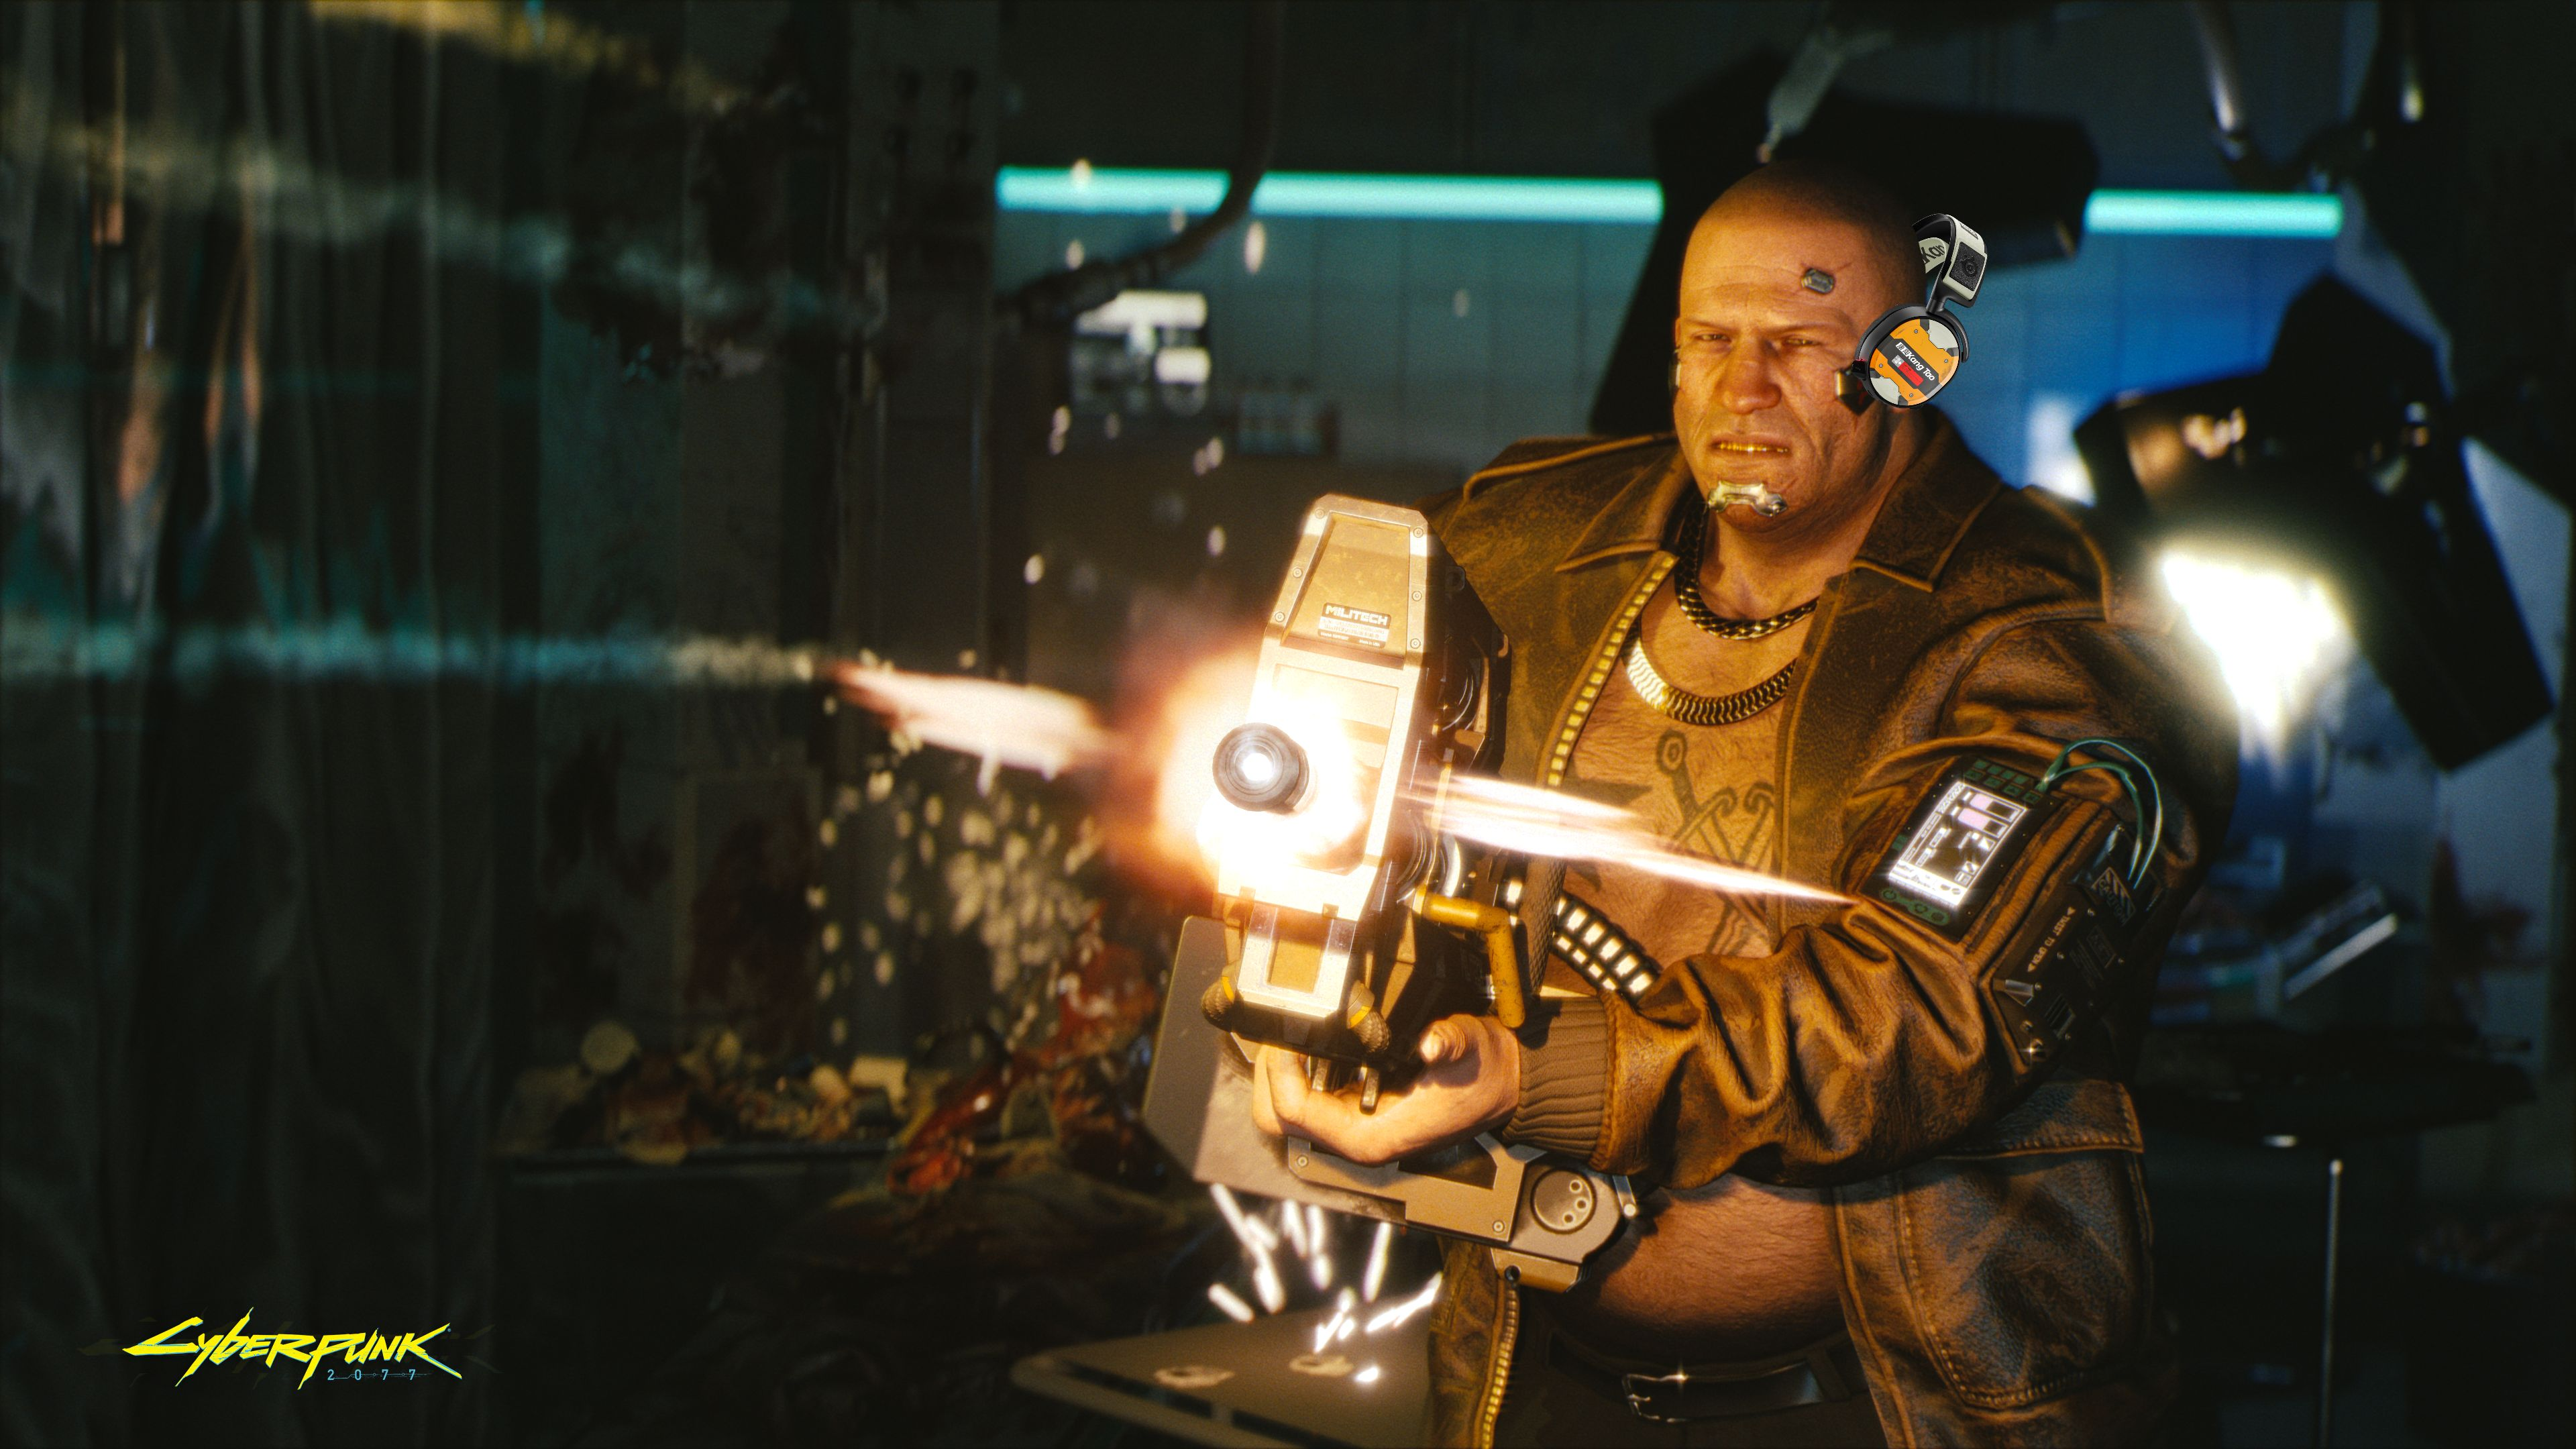 A screenshot of a big, very angry man from Cyberpunk 2077 firing a very big gun. He is wearing an Arctis 1 headset but it clearly doesn't even fit on his head properly, he's only got one ear in.